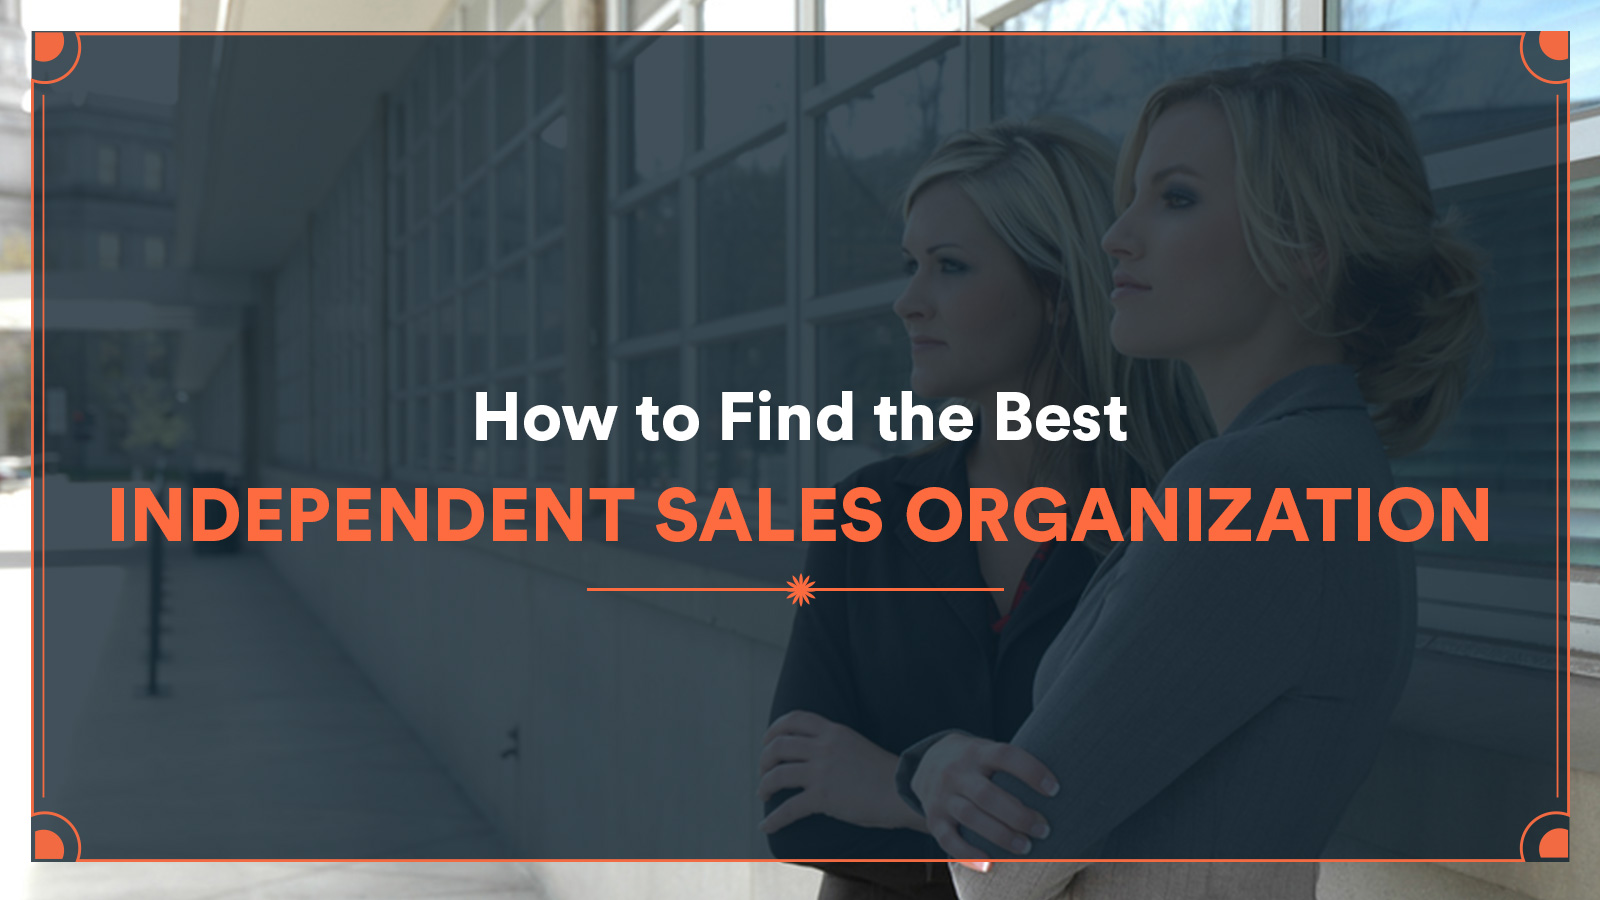 Best Independent Sales Organization